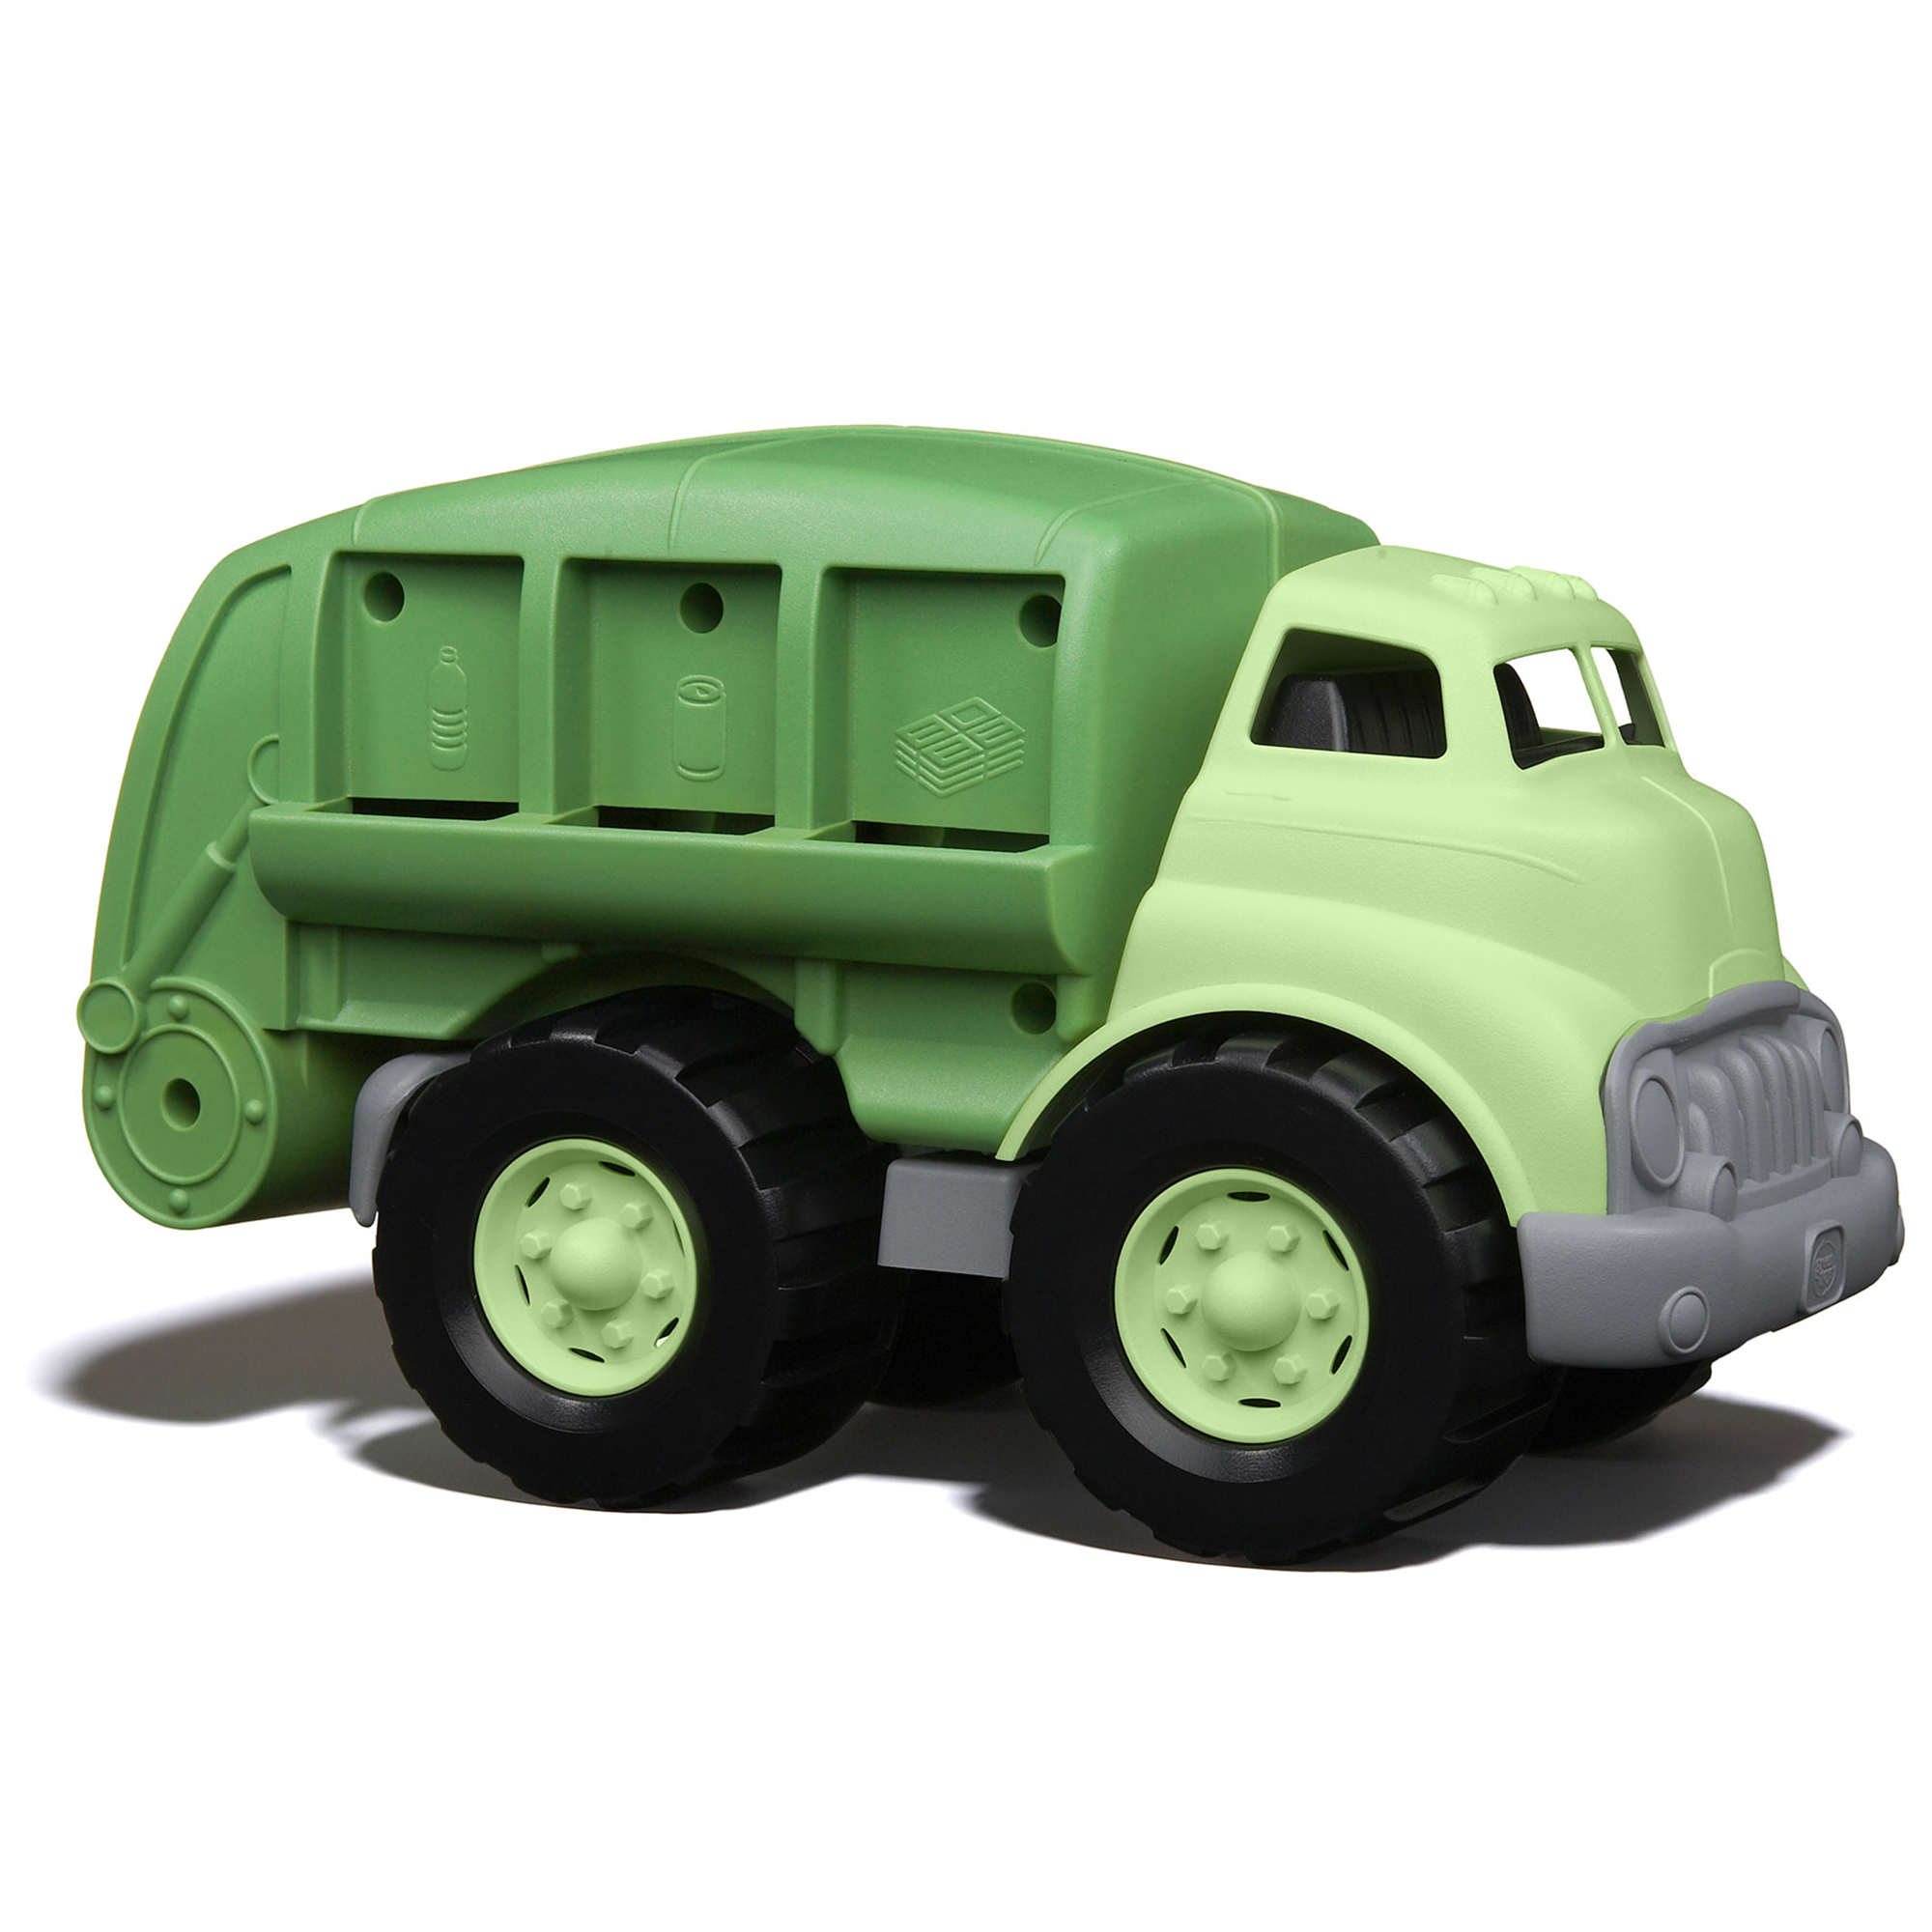 Picture of Green Toys Recycle Truck Set